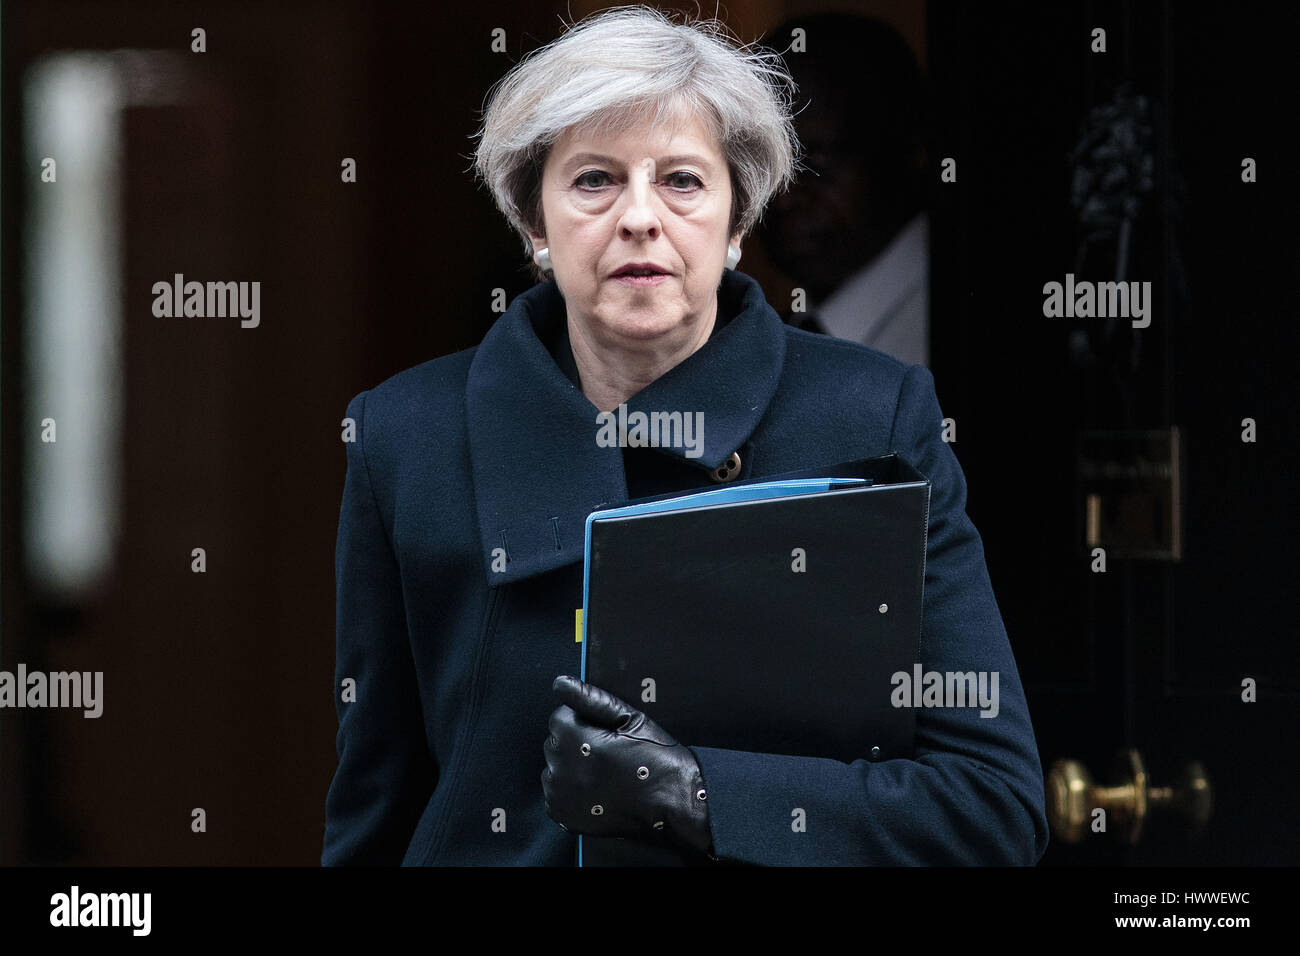 London, UK. 23rd Mar, 2017. British Prime Minister Theresa May leaves 10 Downing Street in London, Britain on March - Stock Image